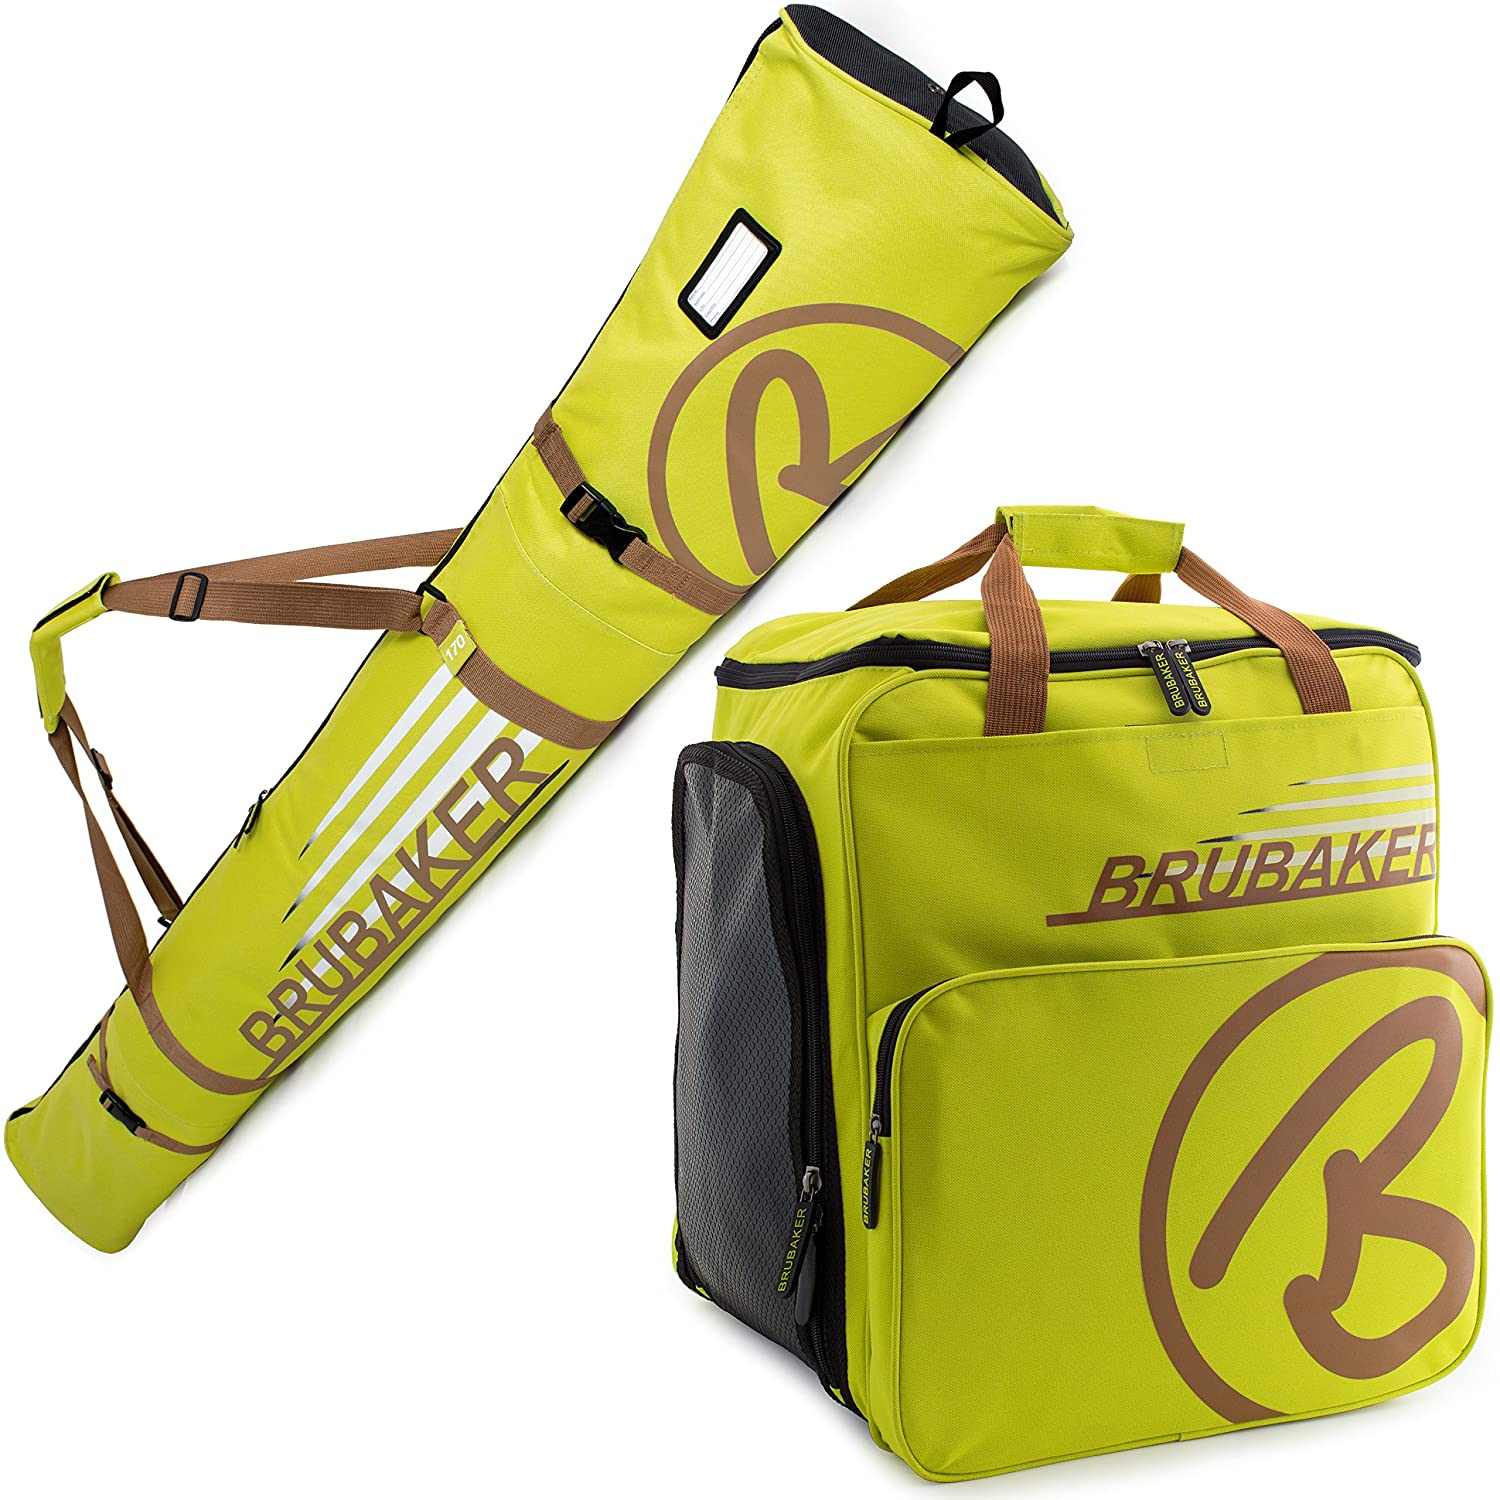 Poles Limited Edition Boots and Helmet BRUBAKER Superfunction Combo Ski Boot Bag and Ski Bag for 1 Pair of Ski